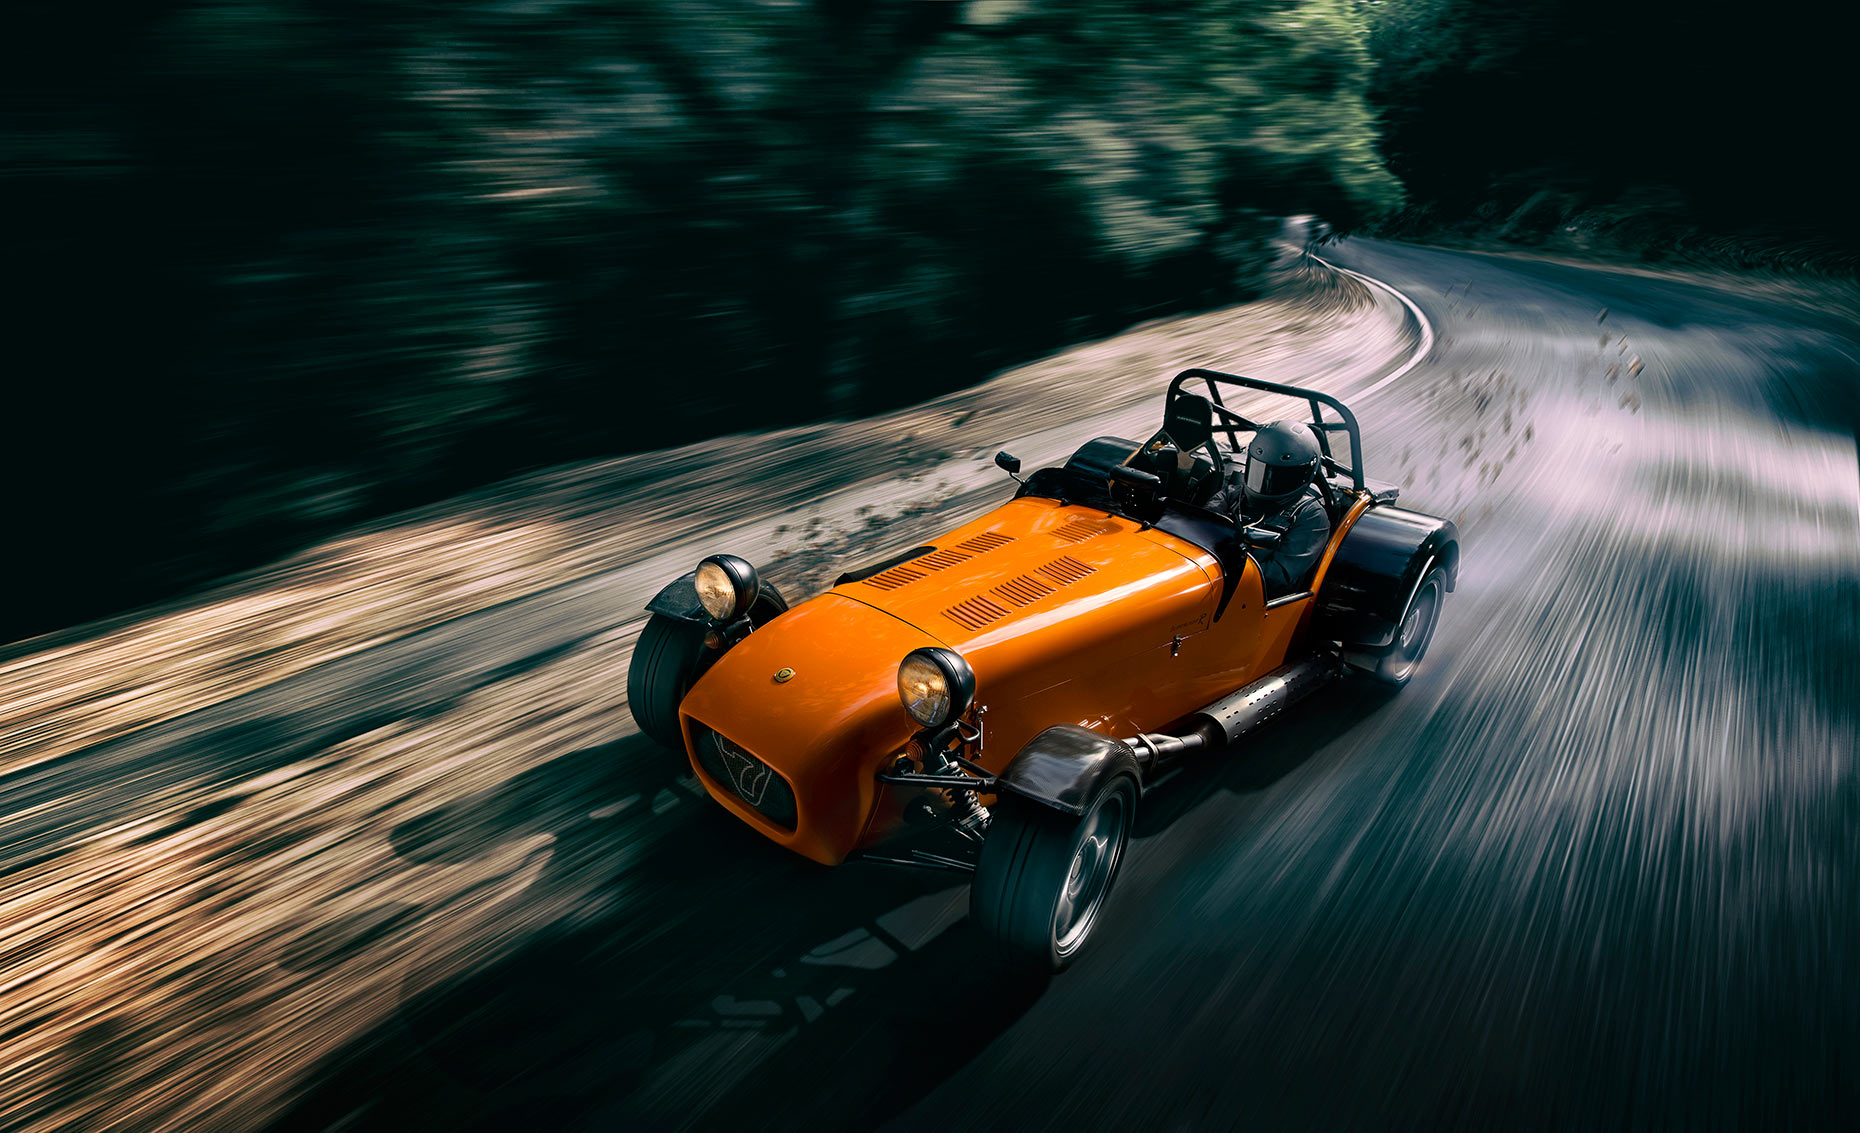 Caterham-motion_v4